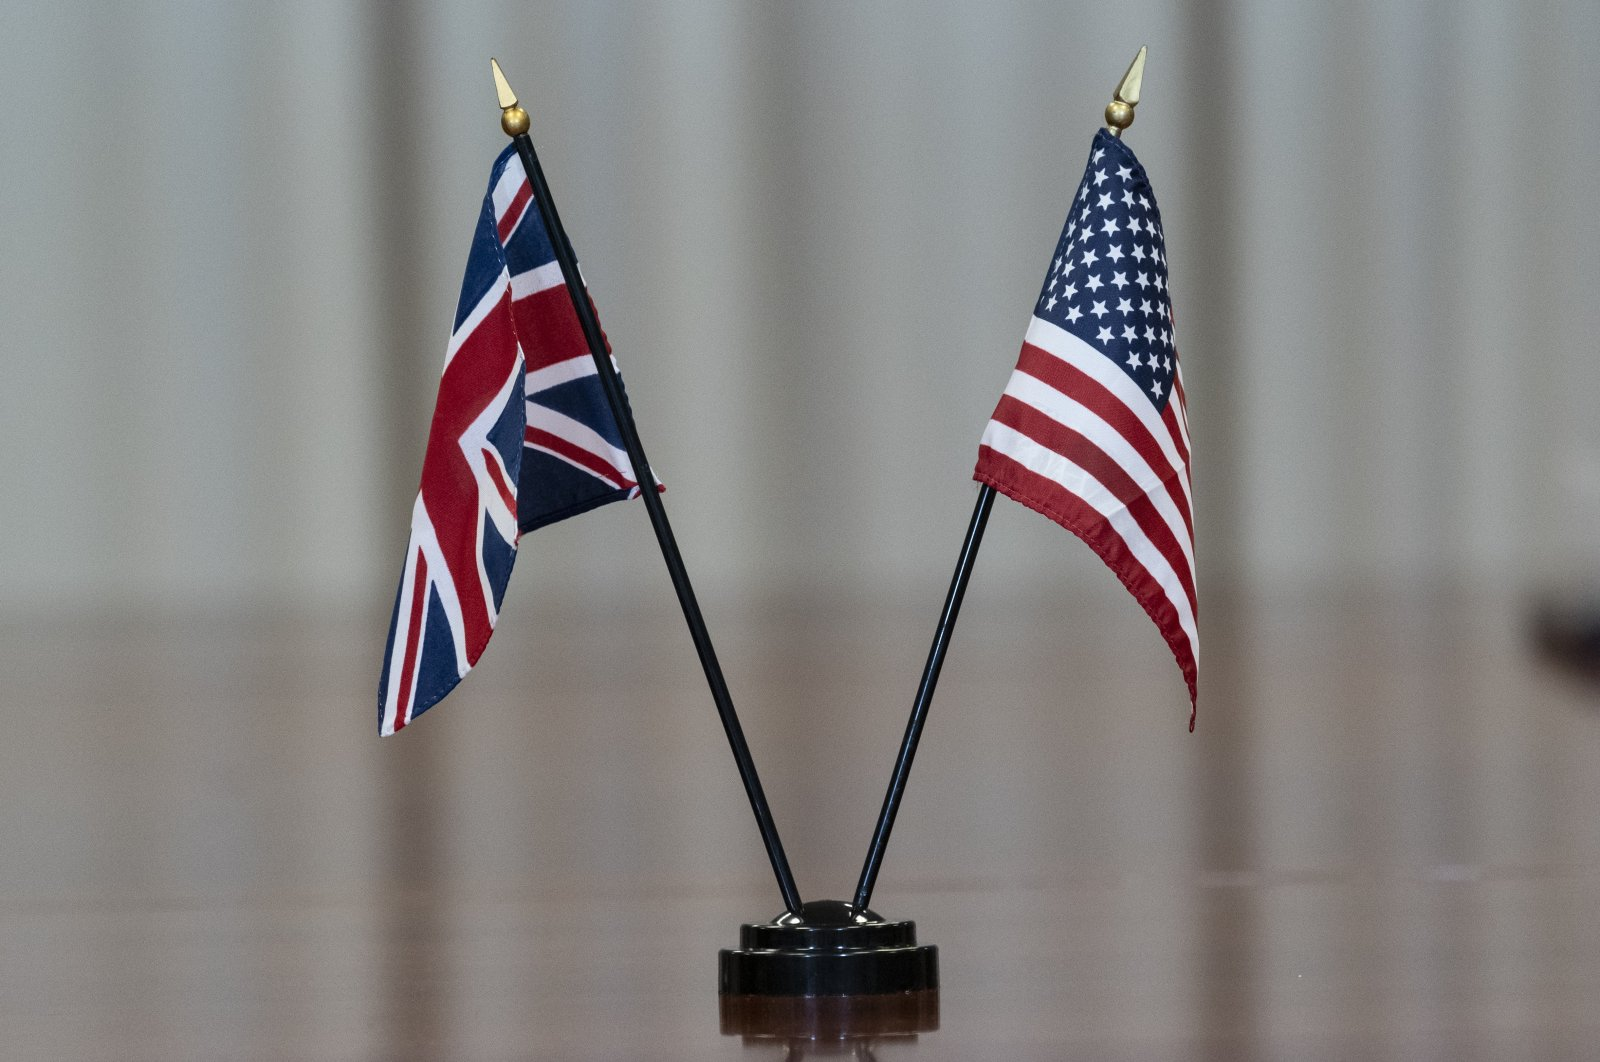 The flags of both countries are seen on the table during a meeting with Secretary of Defense Lloyd Austin and the United Kingdom Secretary of State for Defense Ben Wallace at the Pentagon, Monday, July 12, 2021, in Washington. (AP Photo/Alex Brandon)